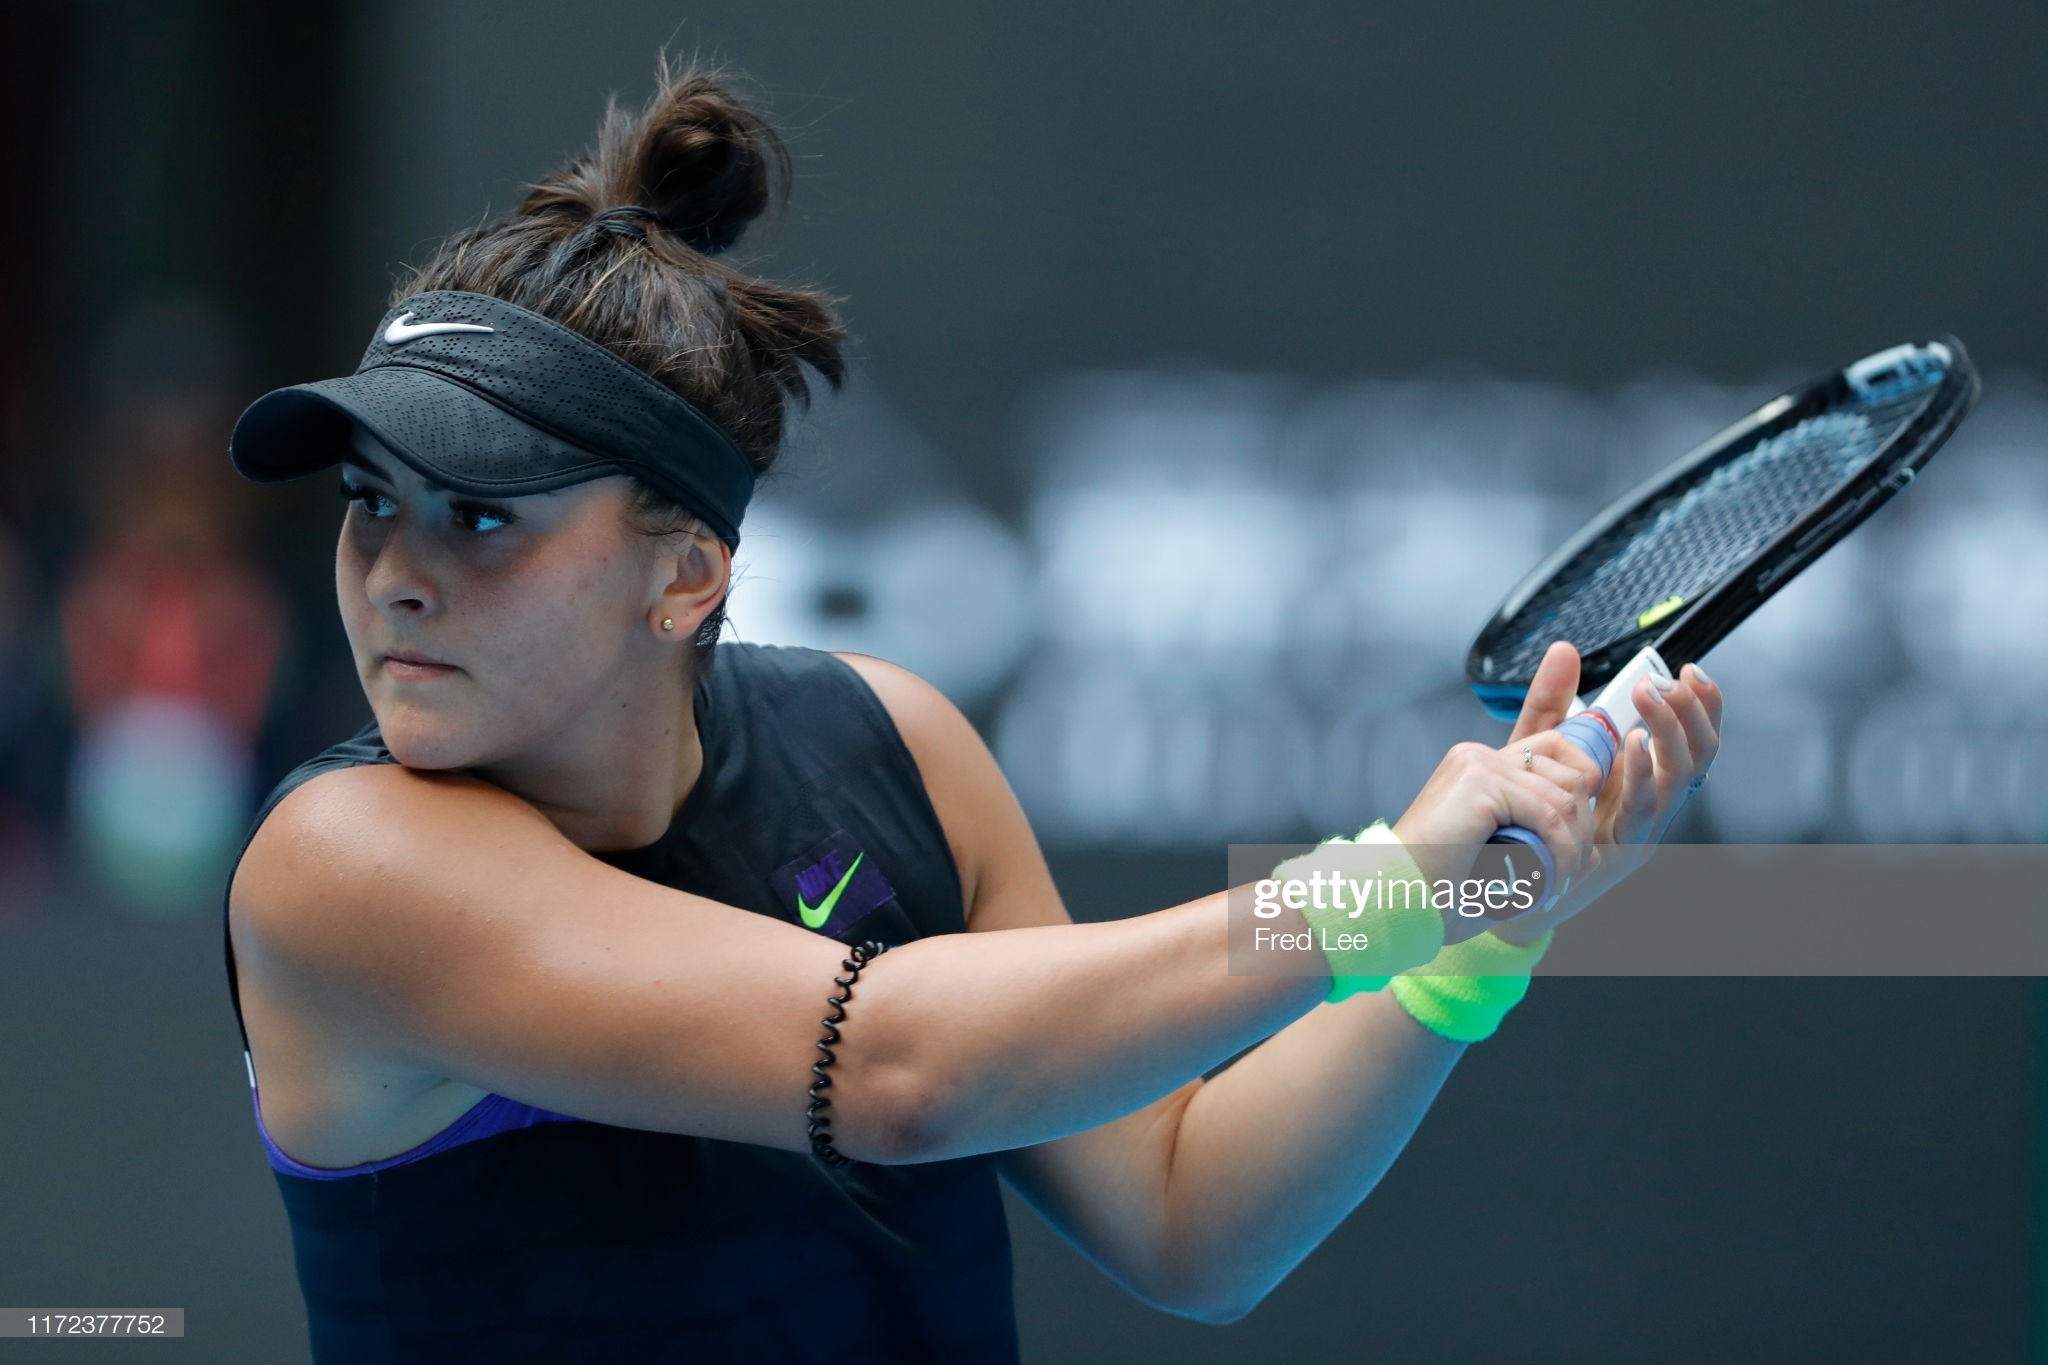 BEIJING, CHINA - SEPTEMBER 30: Bianca Andreescu of Canada in action against Aliaksandra Sasnovich of Belarus during the Women's singles first round of 2019 China Open at the China National Tennis Center on September 30, 2019 in Beijing, China. (Photo by Fred Lee/Getty Images)